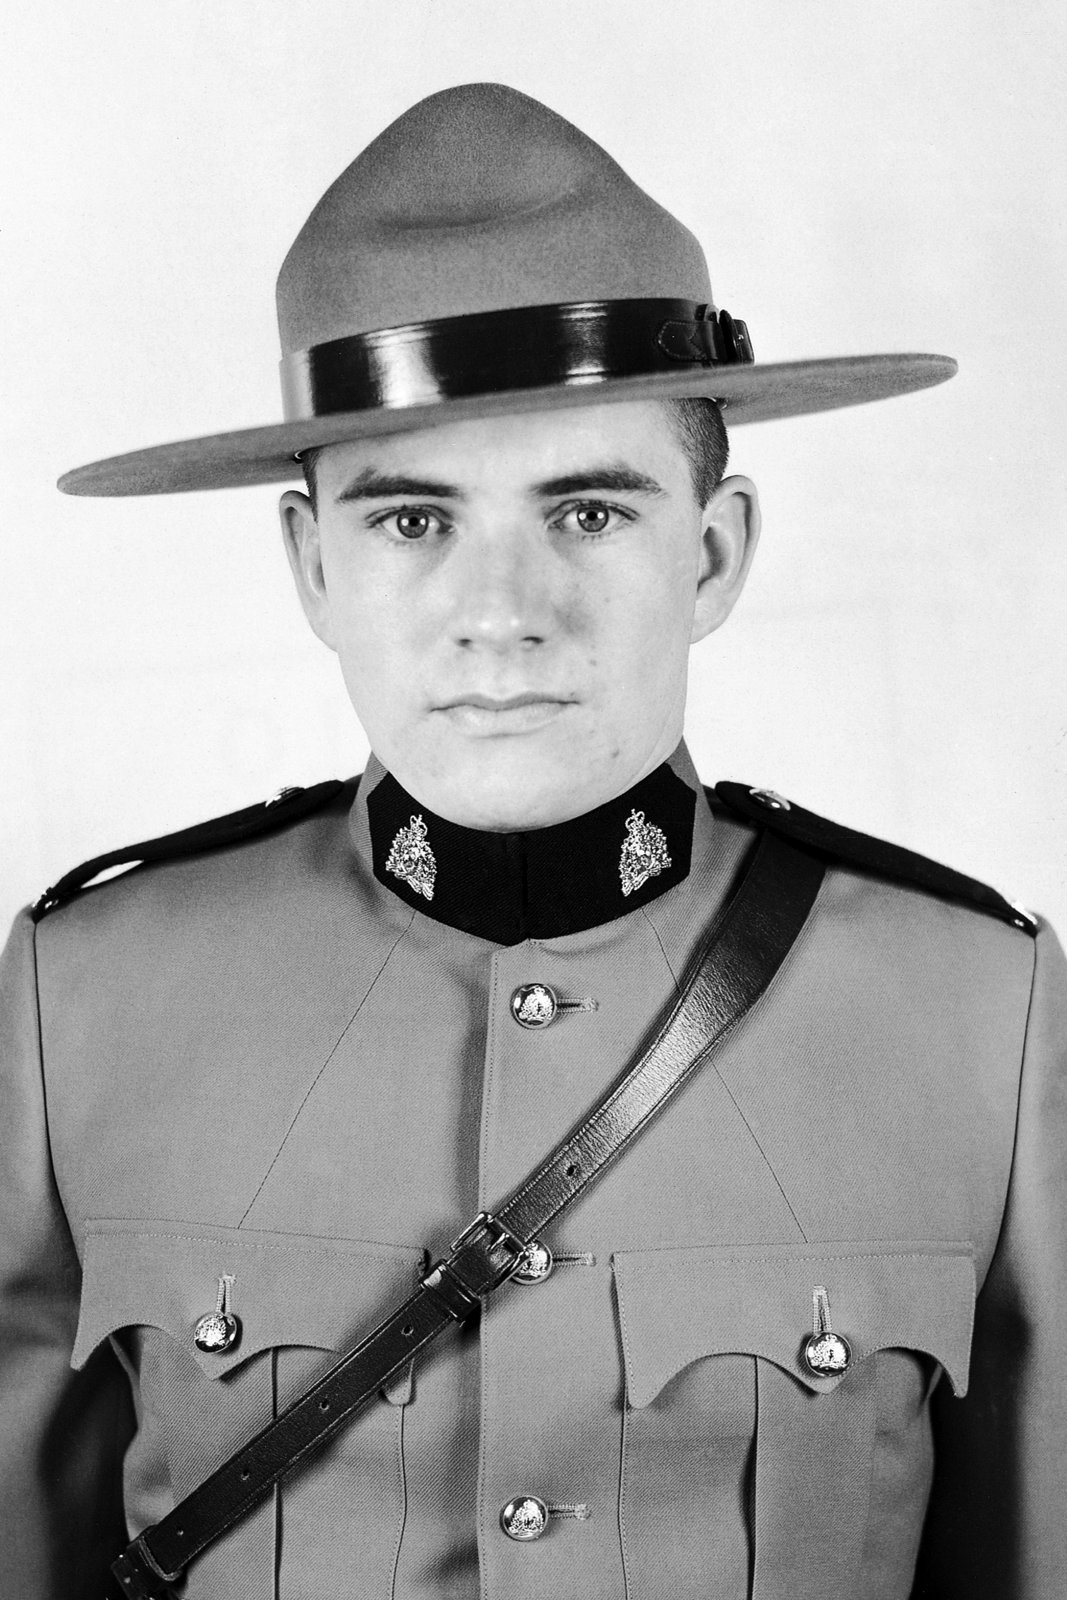 Constable John Brian Baldwinson– © Her Majesty the Queen in Right of Canada as represented by the Royal Canadian Mounted Police